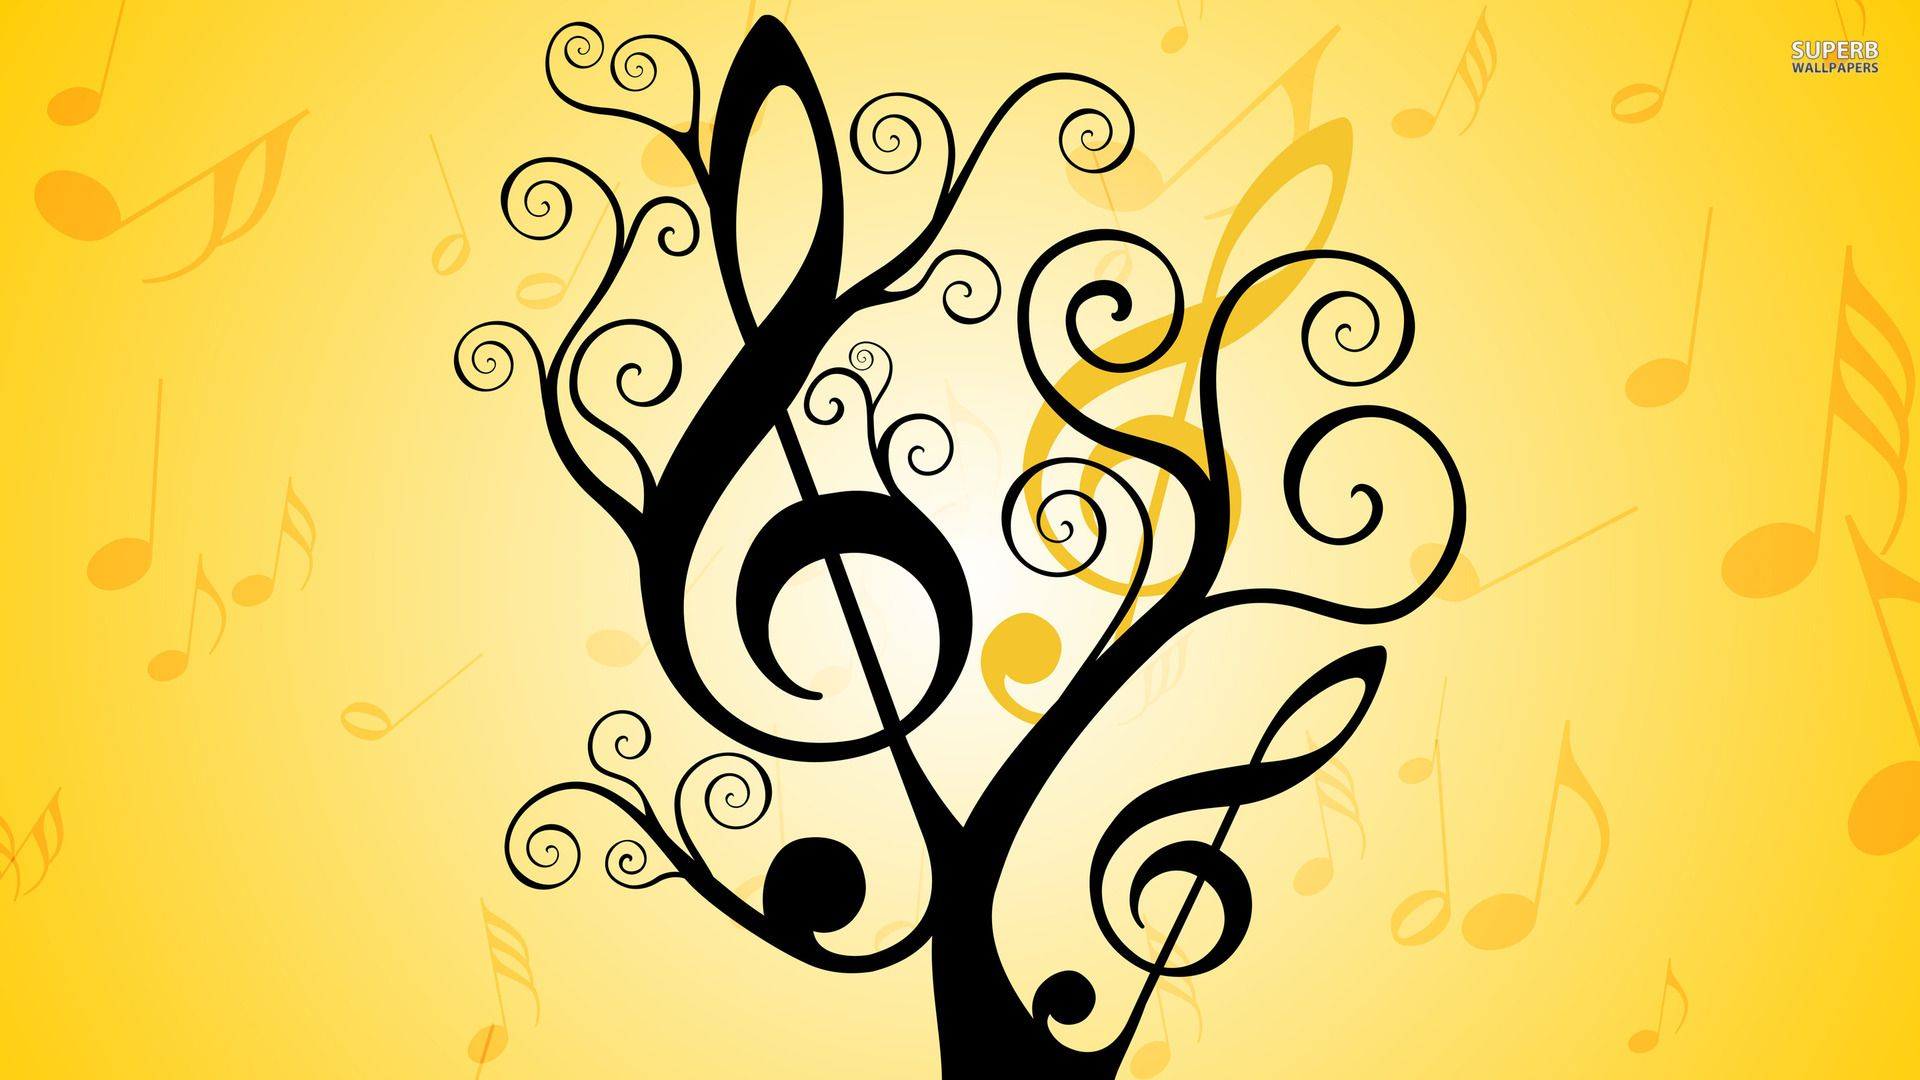 pictures of music notes | Musical notes wallpaper 1920x1080 ...